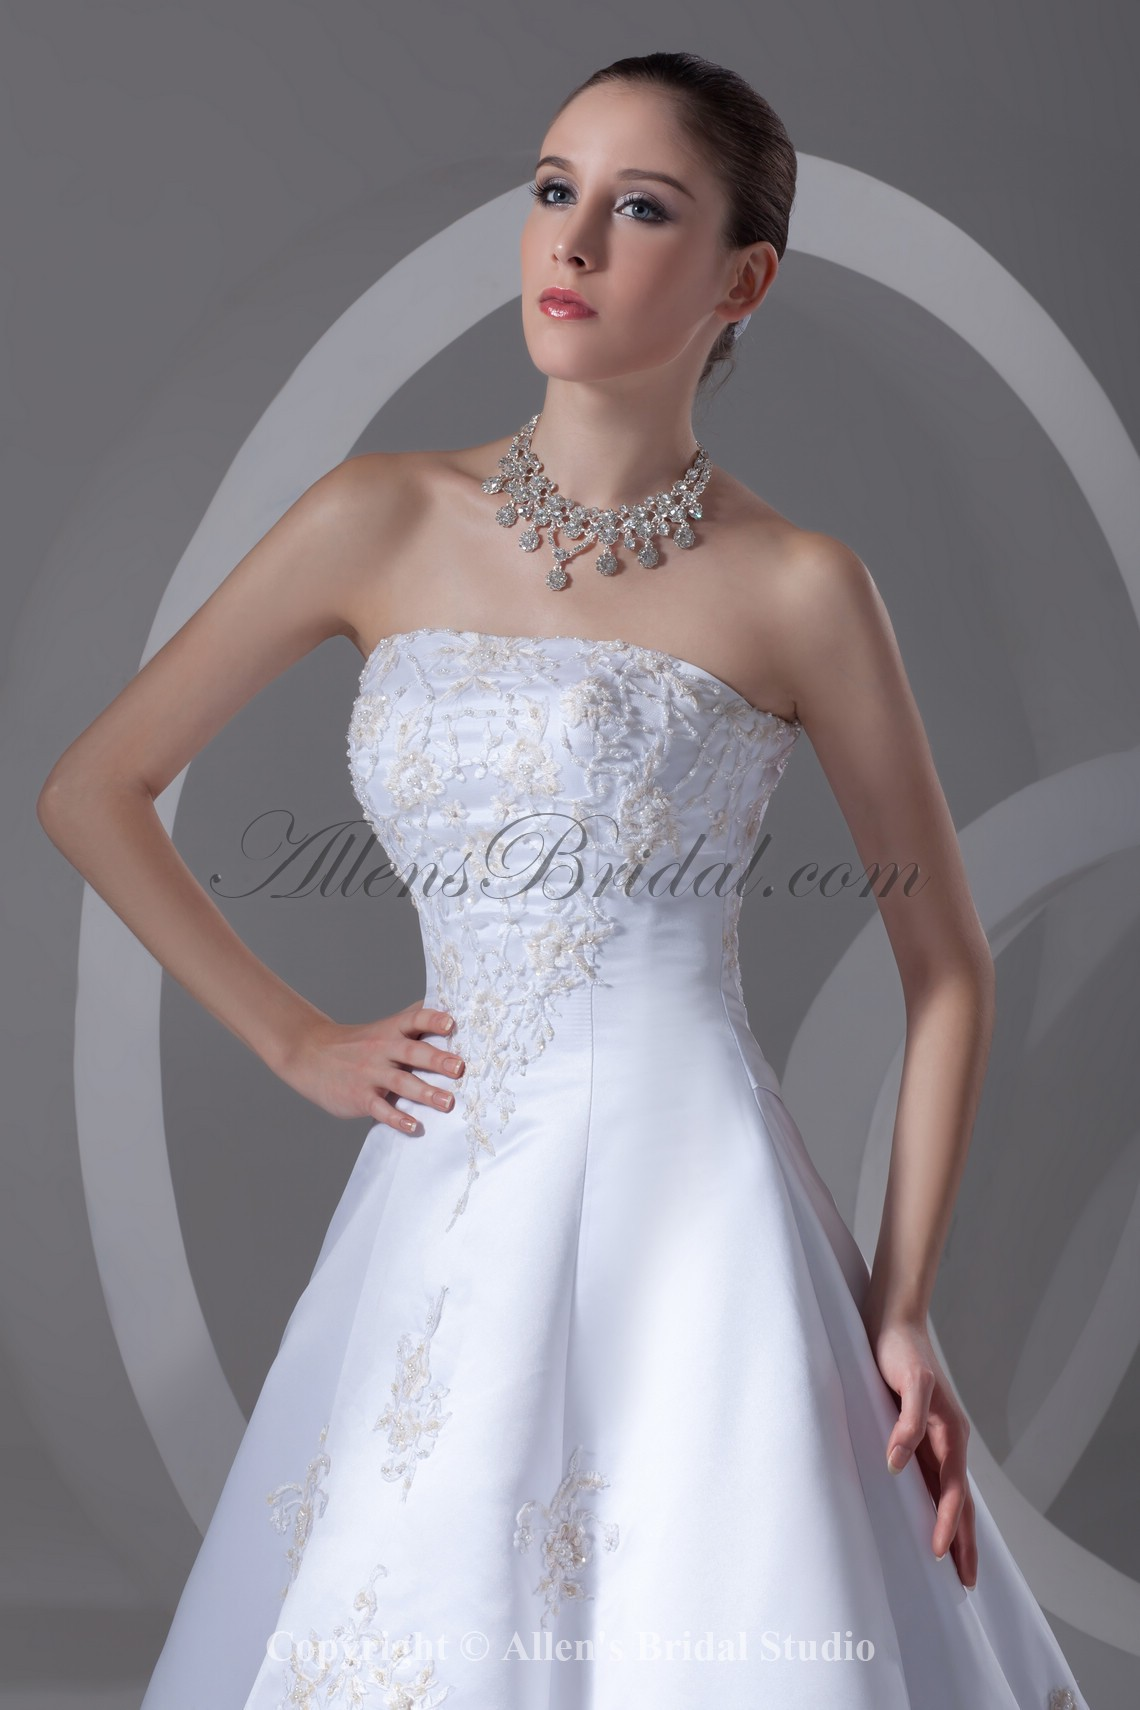 /900-7214/satin-strapless-neckline-chapel-train-a-line-embroidered-wedding-dress.jpg